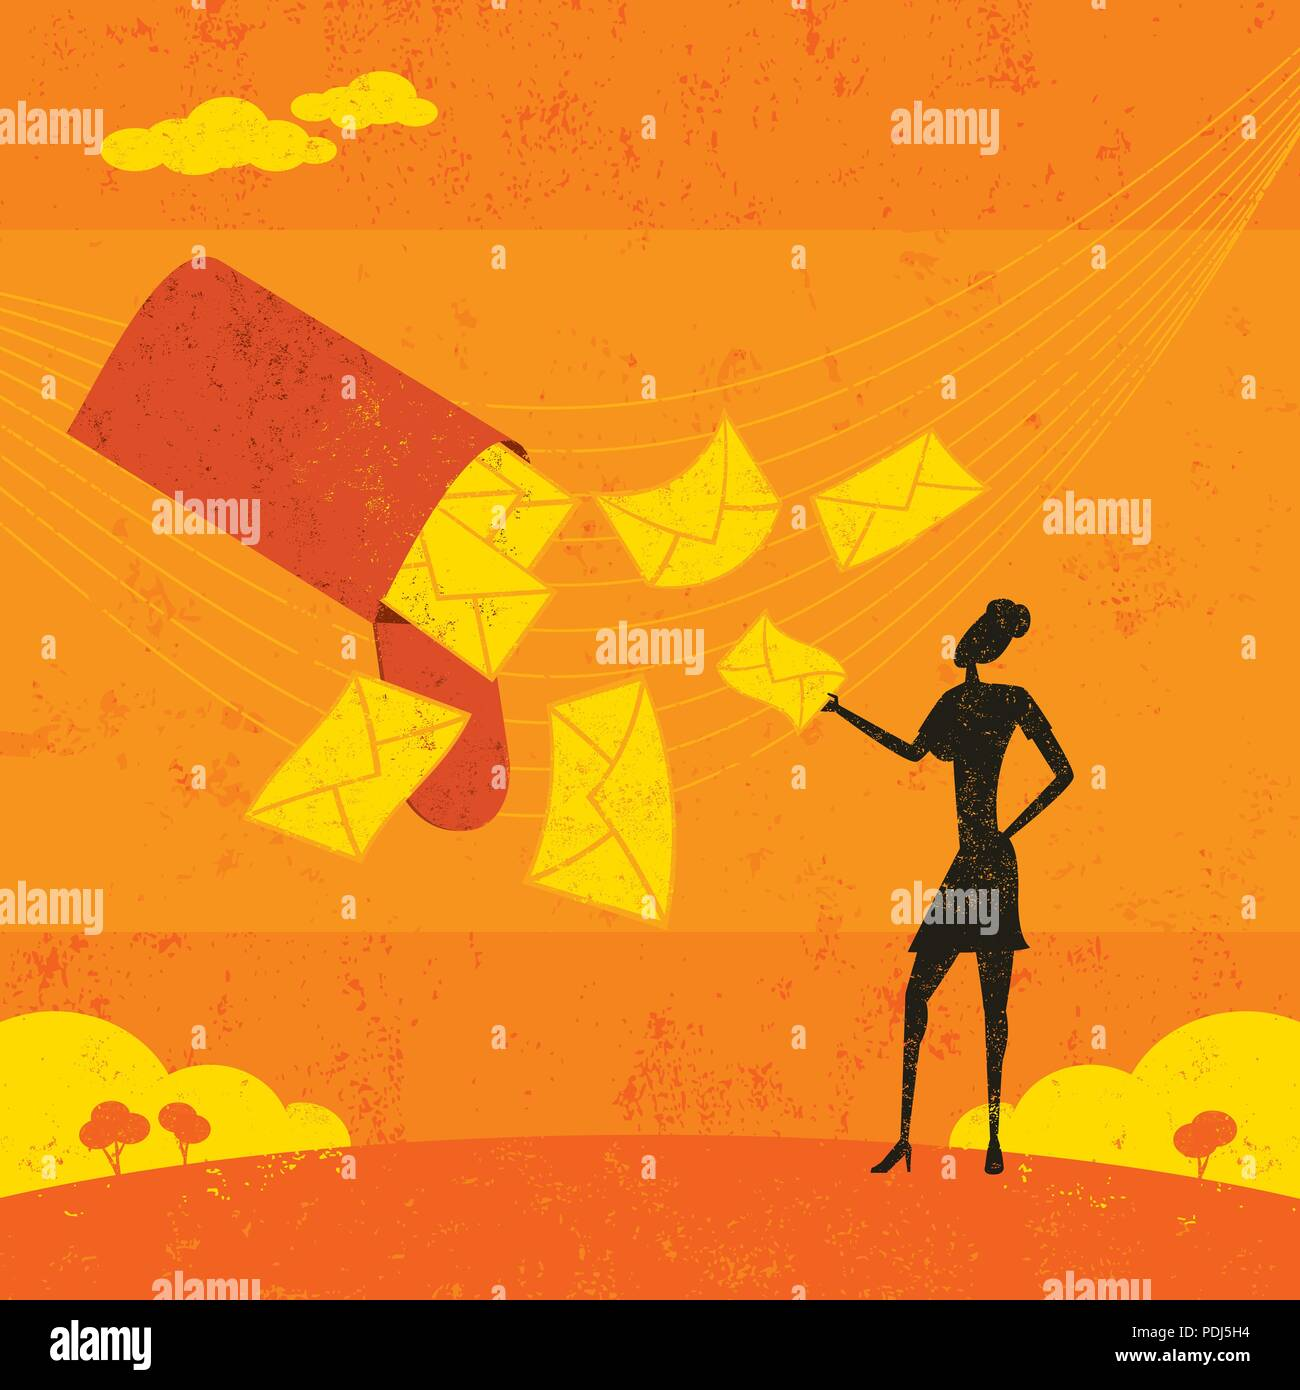 New Emails. A businesswoman receiving a lot of email. - Stock Vector